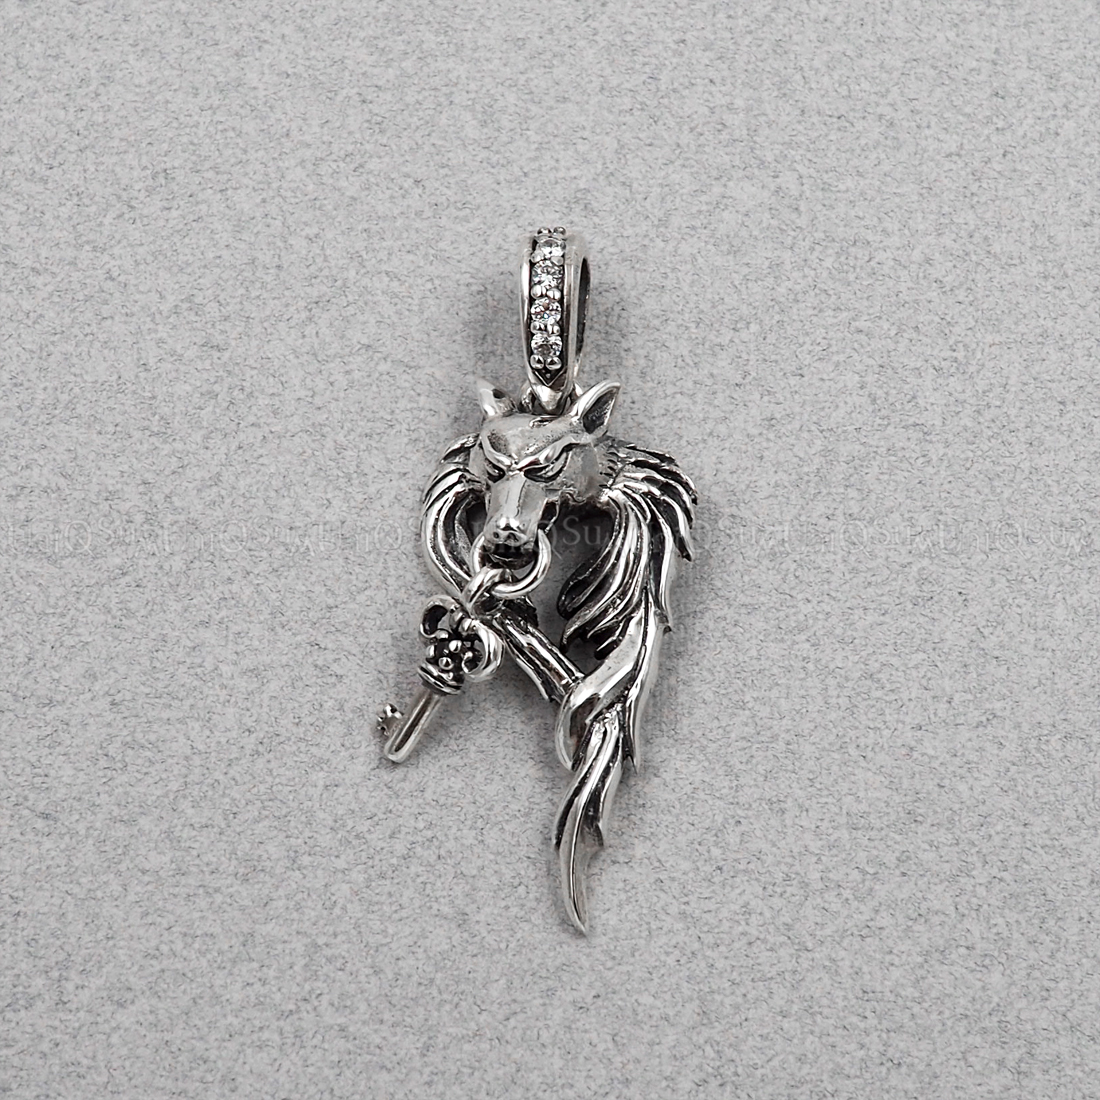 925 sterling silver wolf pendant with dangling key uniqsum wolf pendant key wolf 925 sterling silver pendants for mens necklaces key charm biker jewelry mozeypictures Choice Image